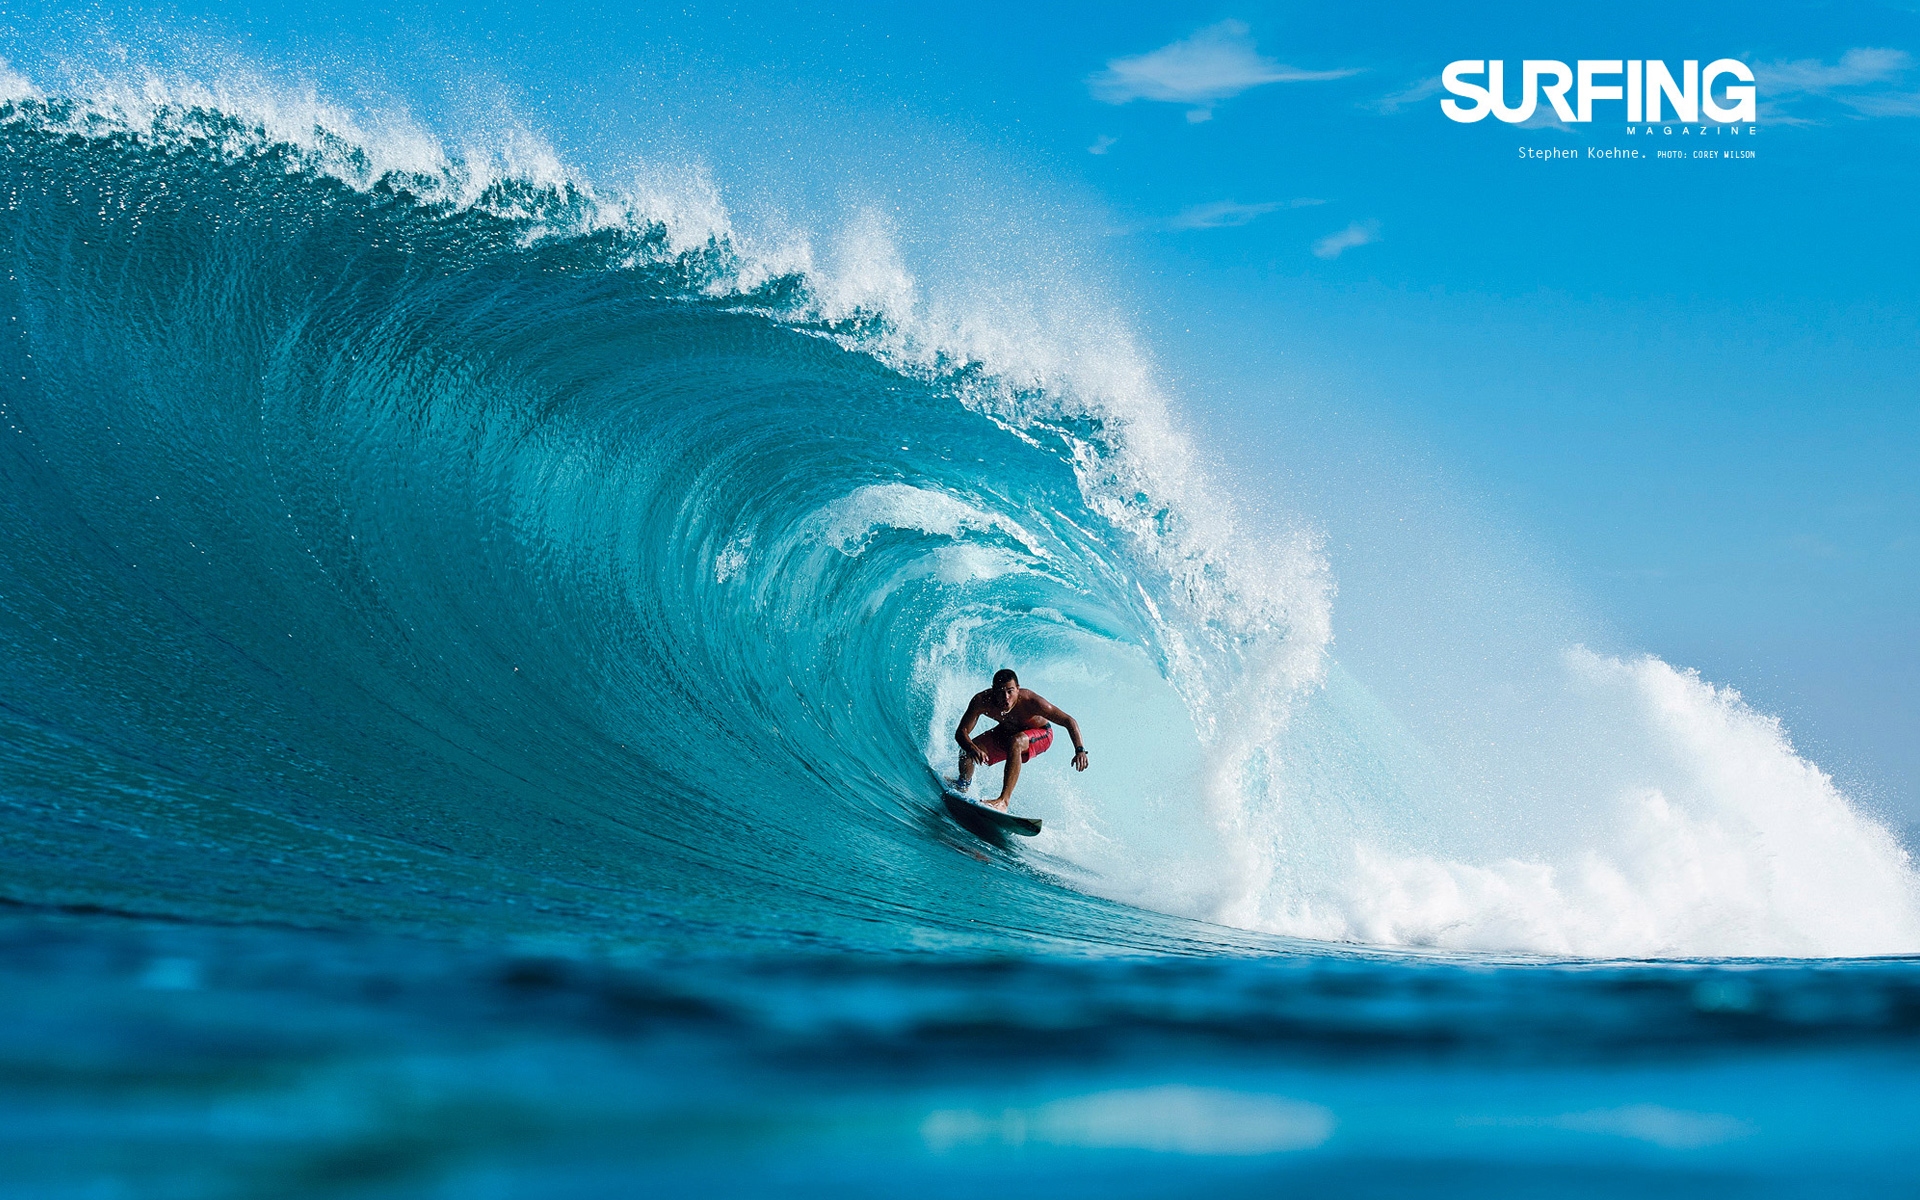 Surfing in Teahupoo Tahiti Wallpapers | HD Wallpapers